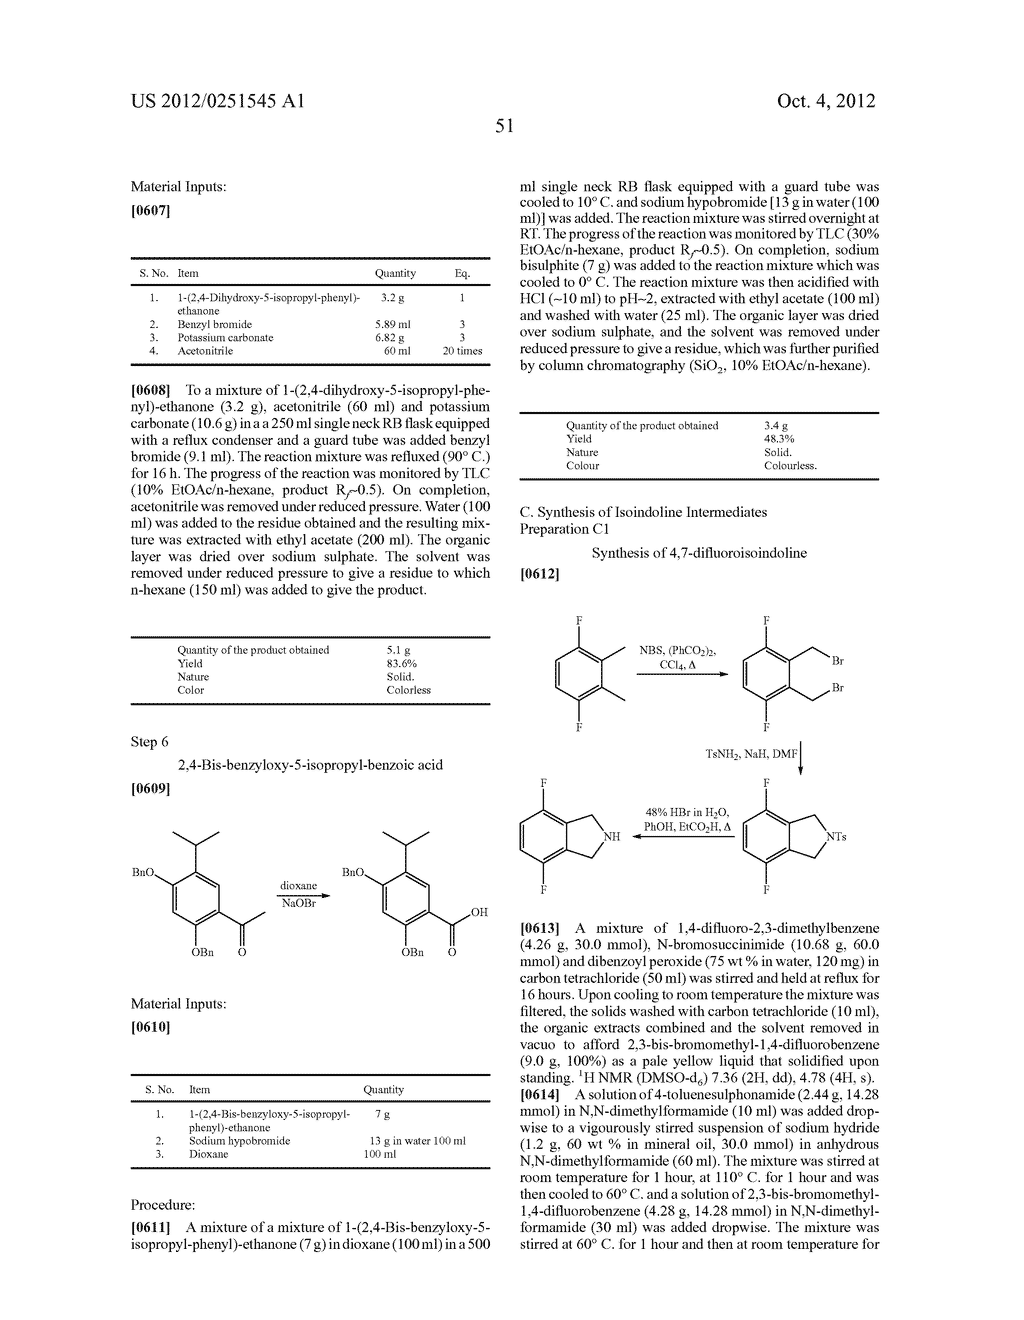 Therapeutic Combinations Of Hydroxybenzamide Derivatives As Inhibitors Of     HSP90 - diagram, schematic, and image 52